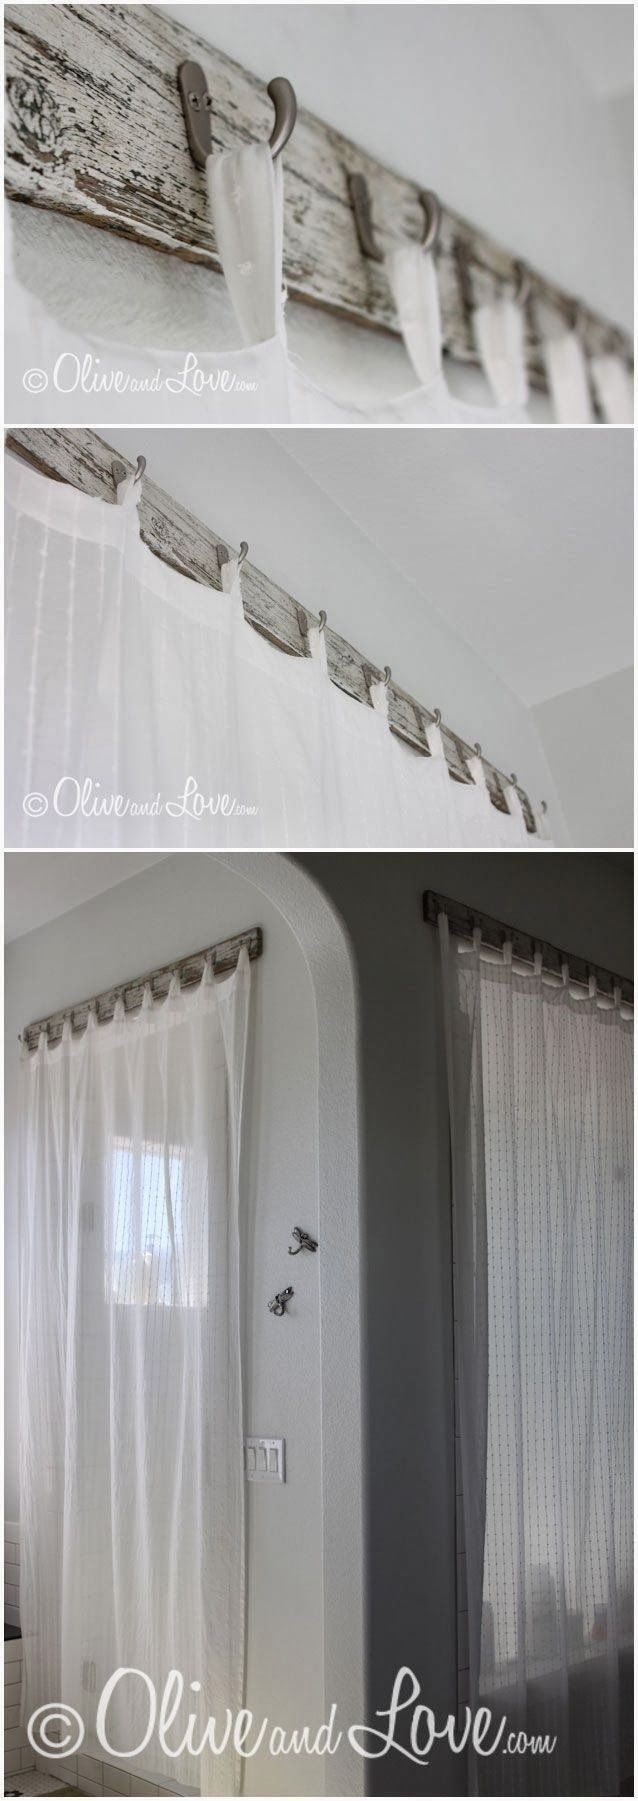 do this wood board for curtains with ties on each side with roman shade underneath, instead of the boring, usual brackets and rods